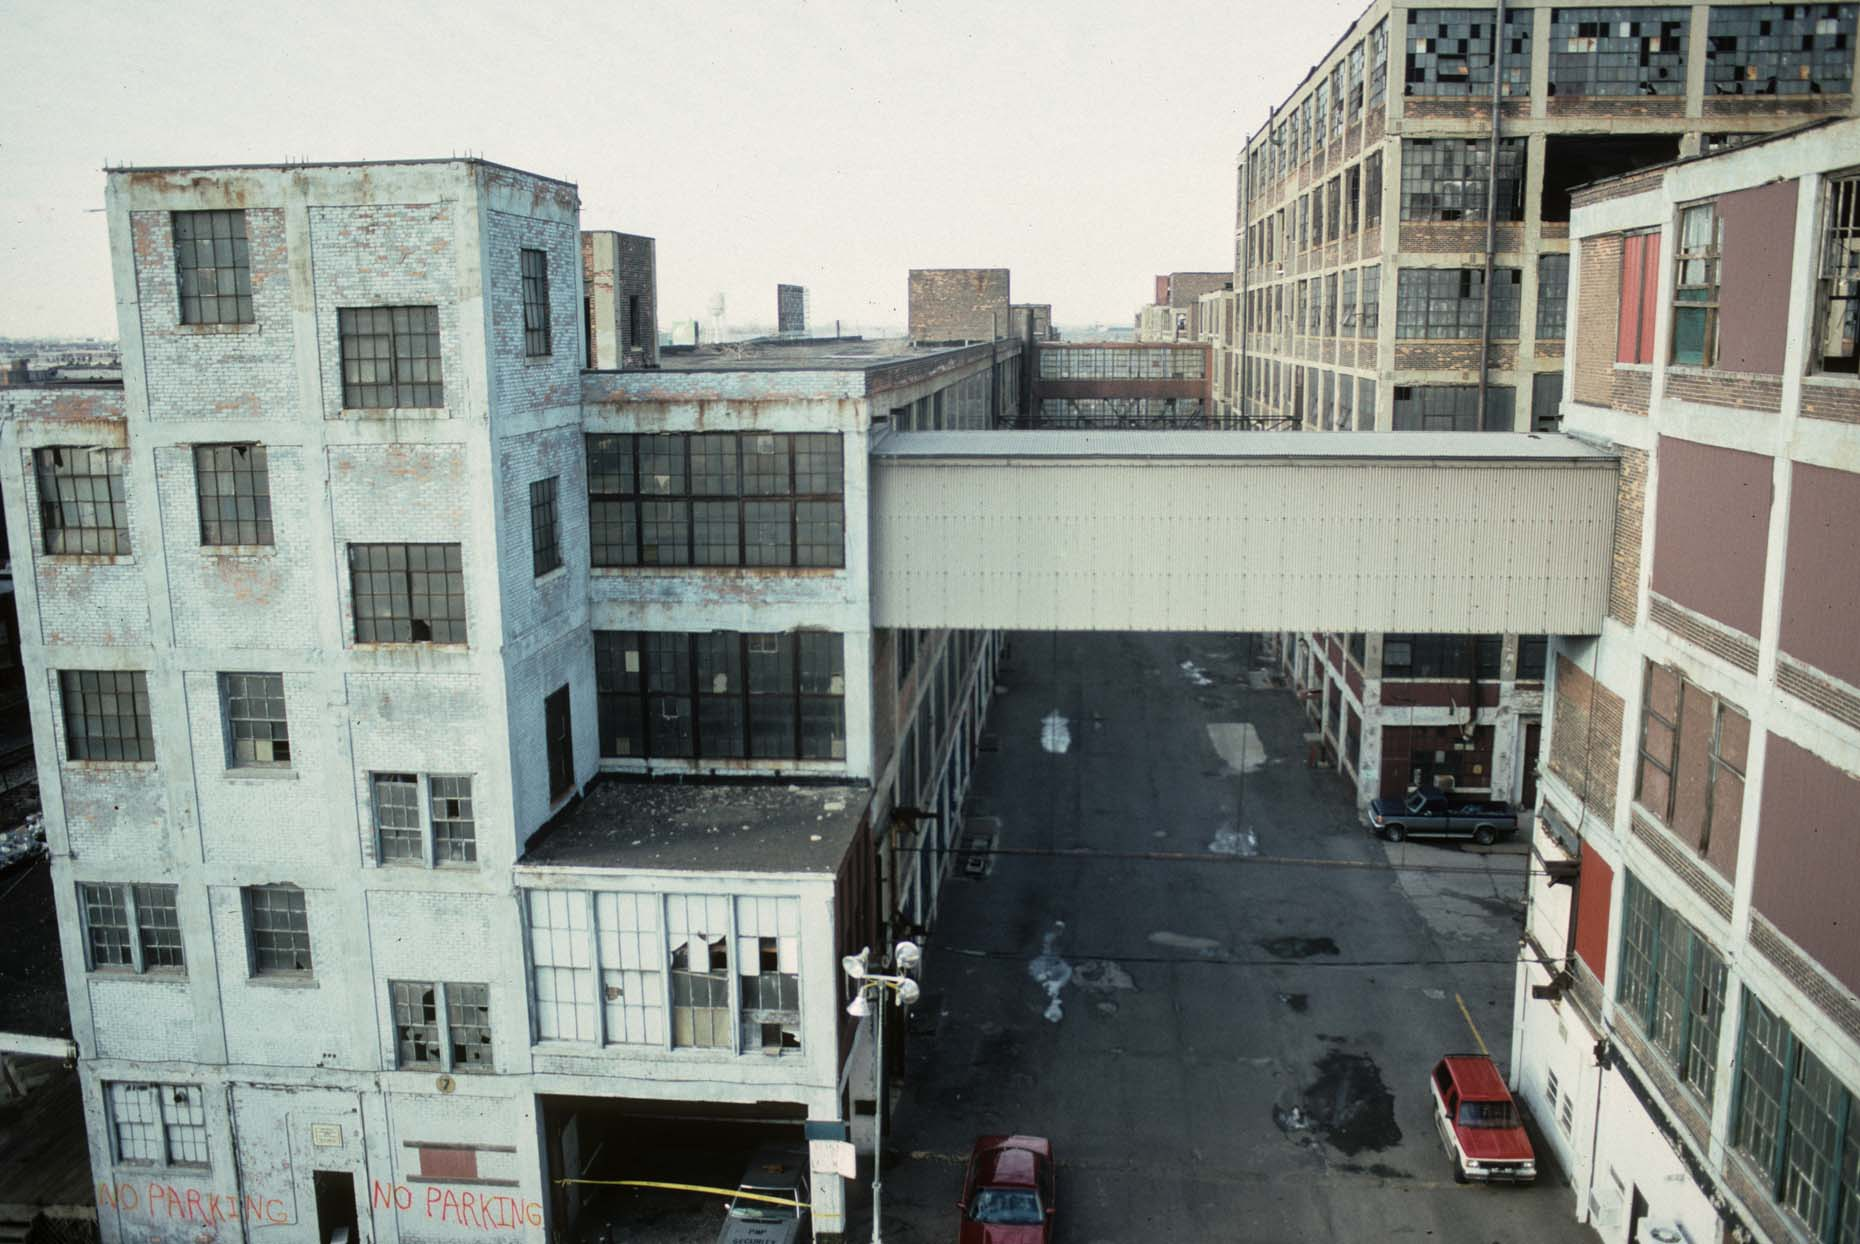 15_View N-DUP. from E. Grand Blvd. at Concord, Former Packard Plant, Detroit, 1998_.jpg